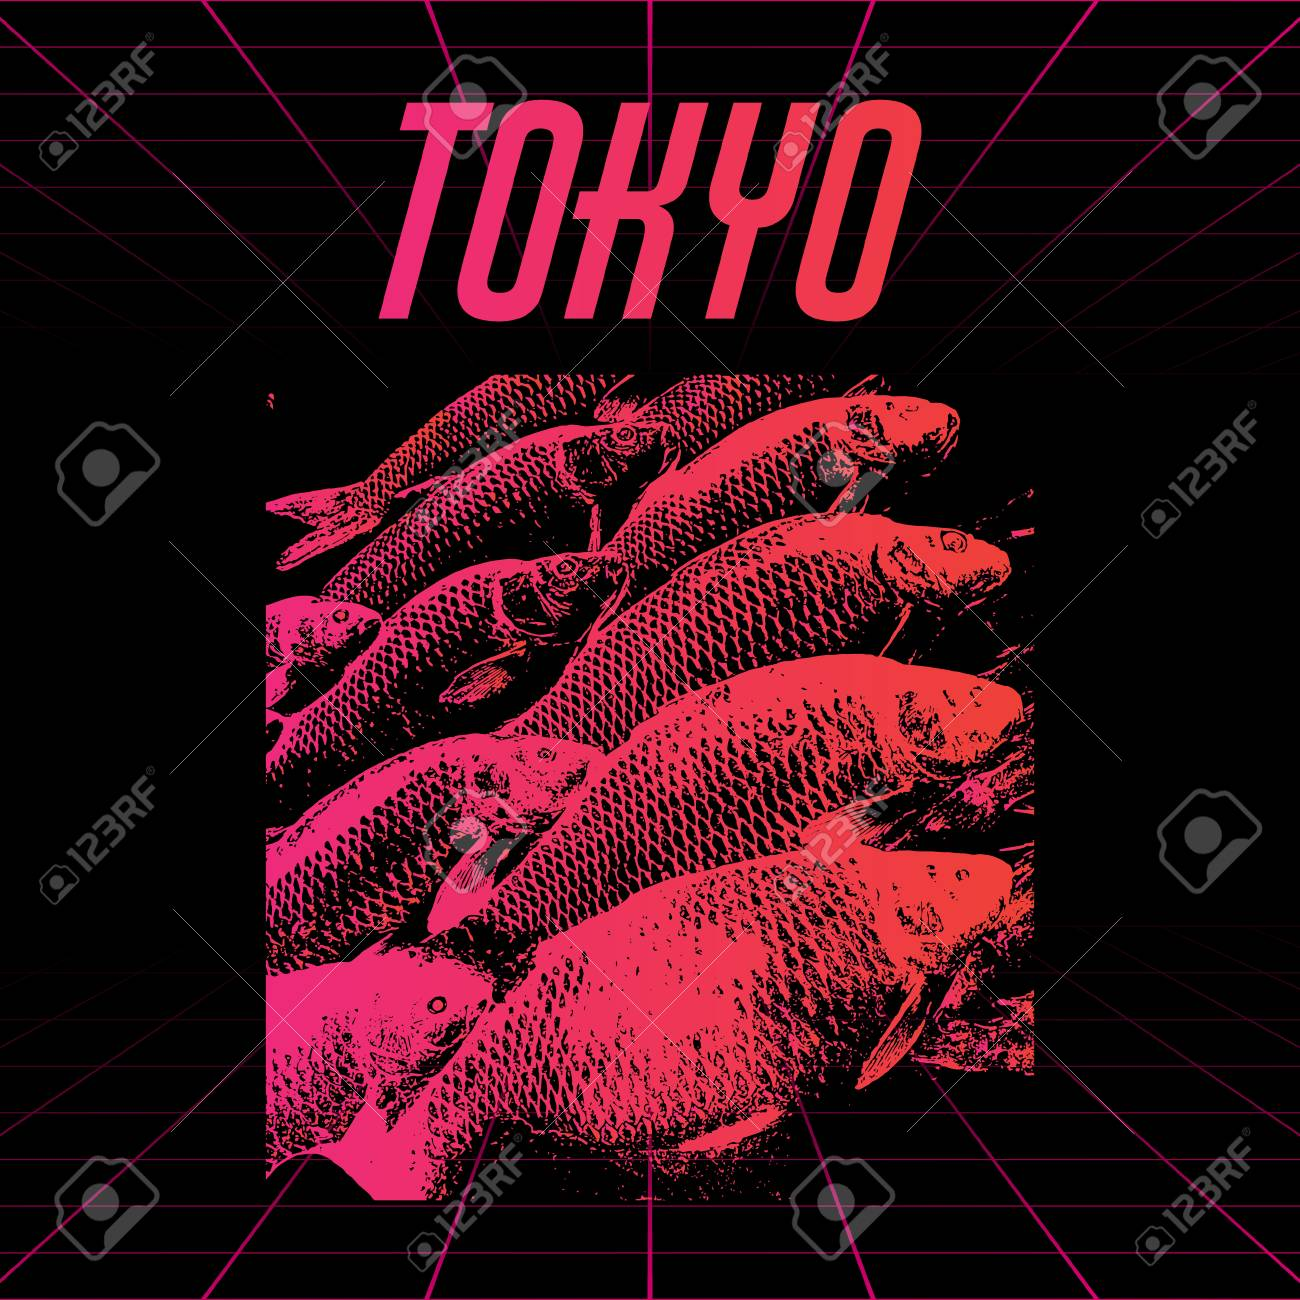 tokyo vector poster with hand drawn illustration of fishes made